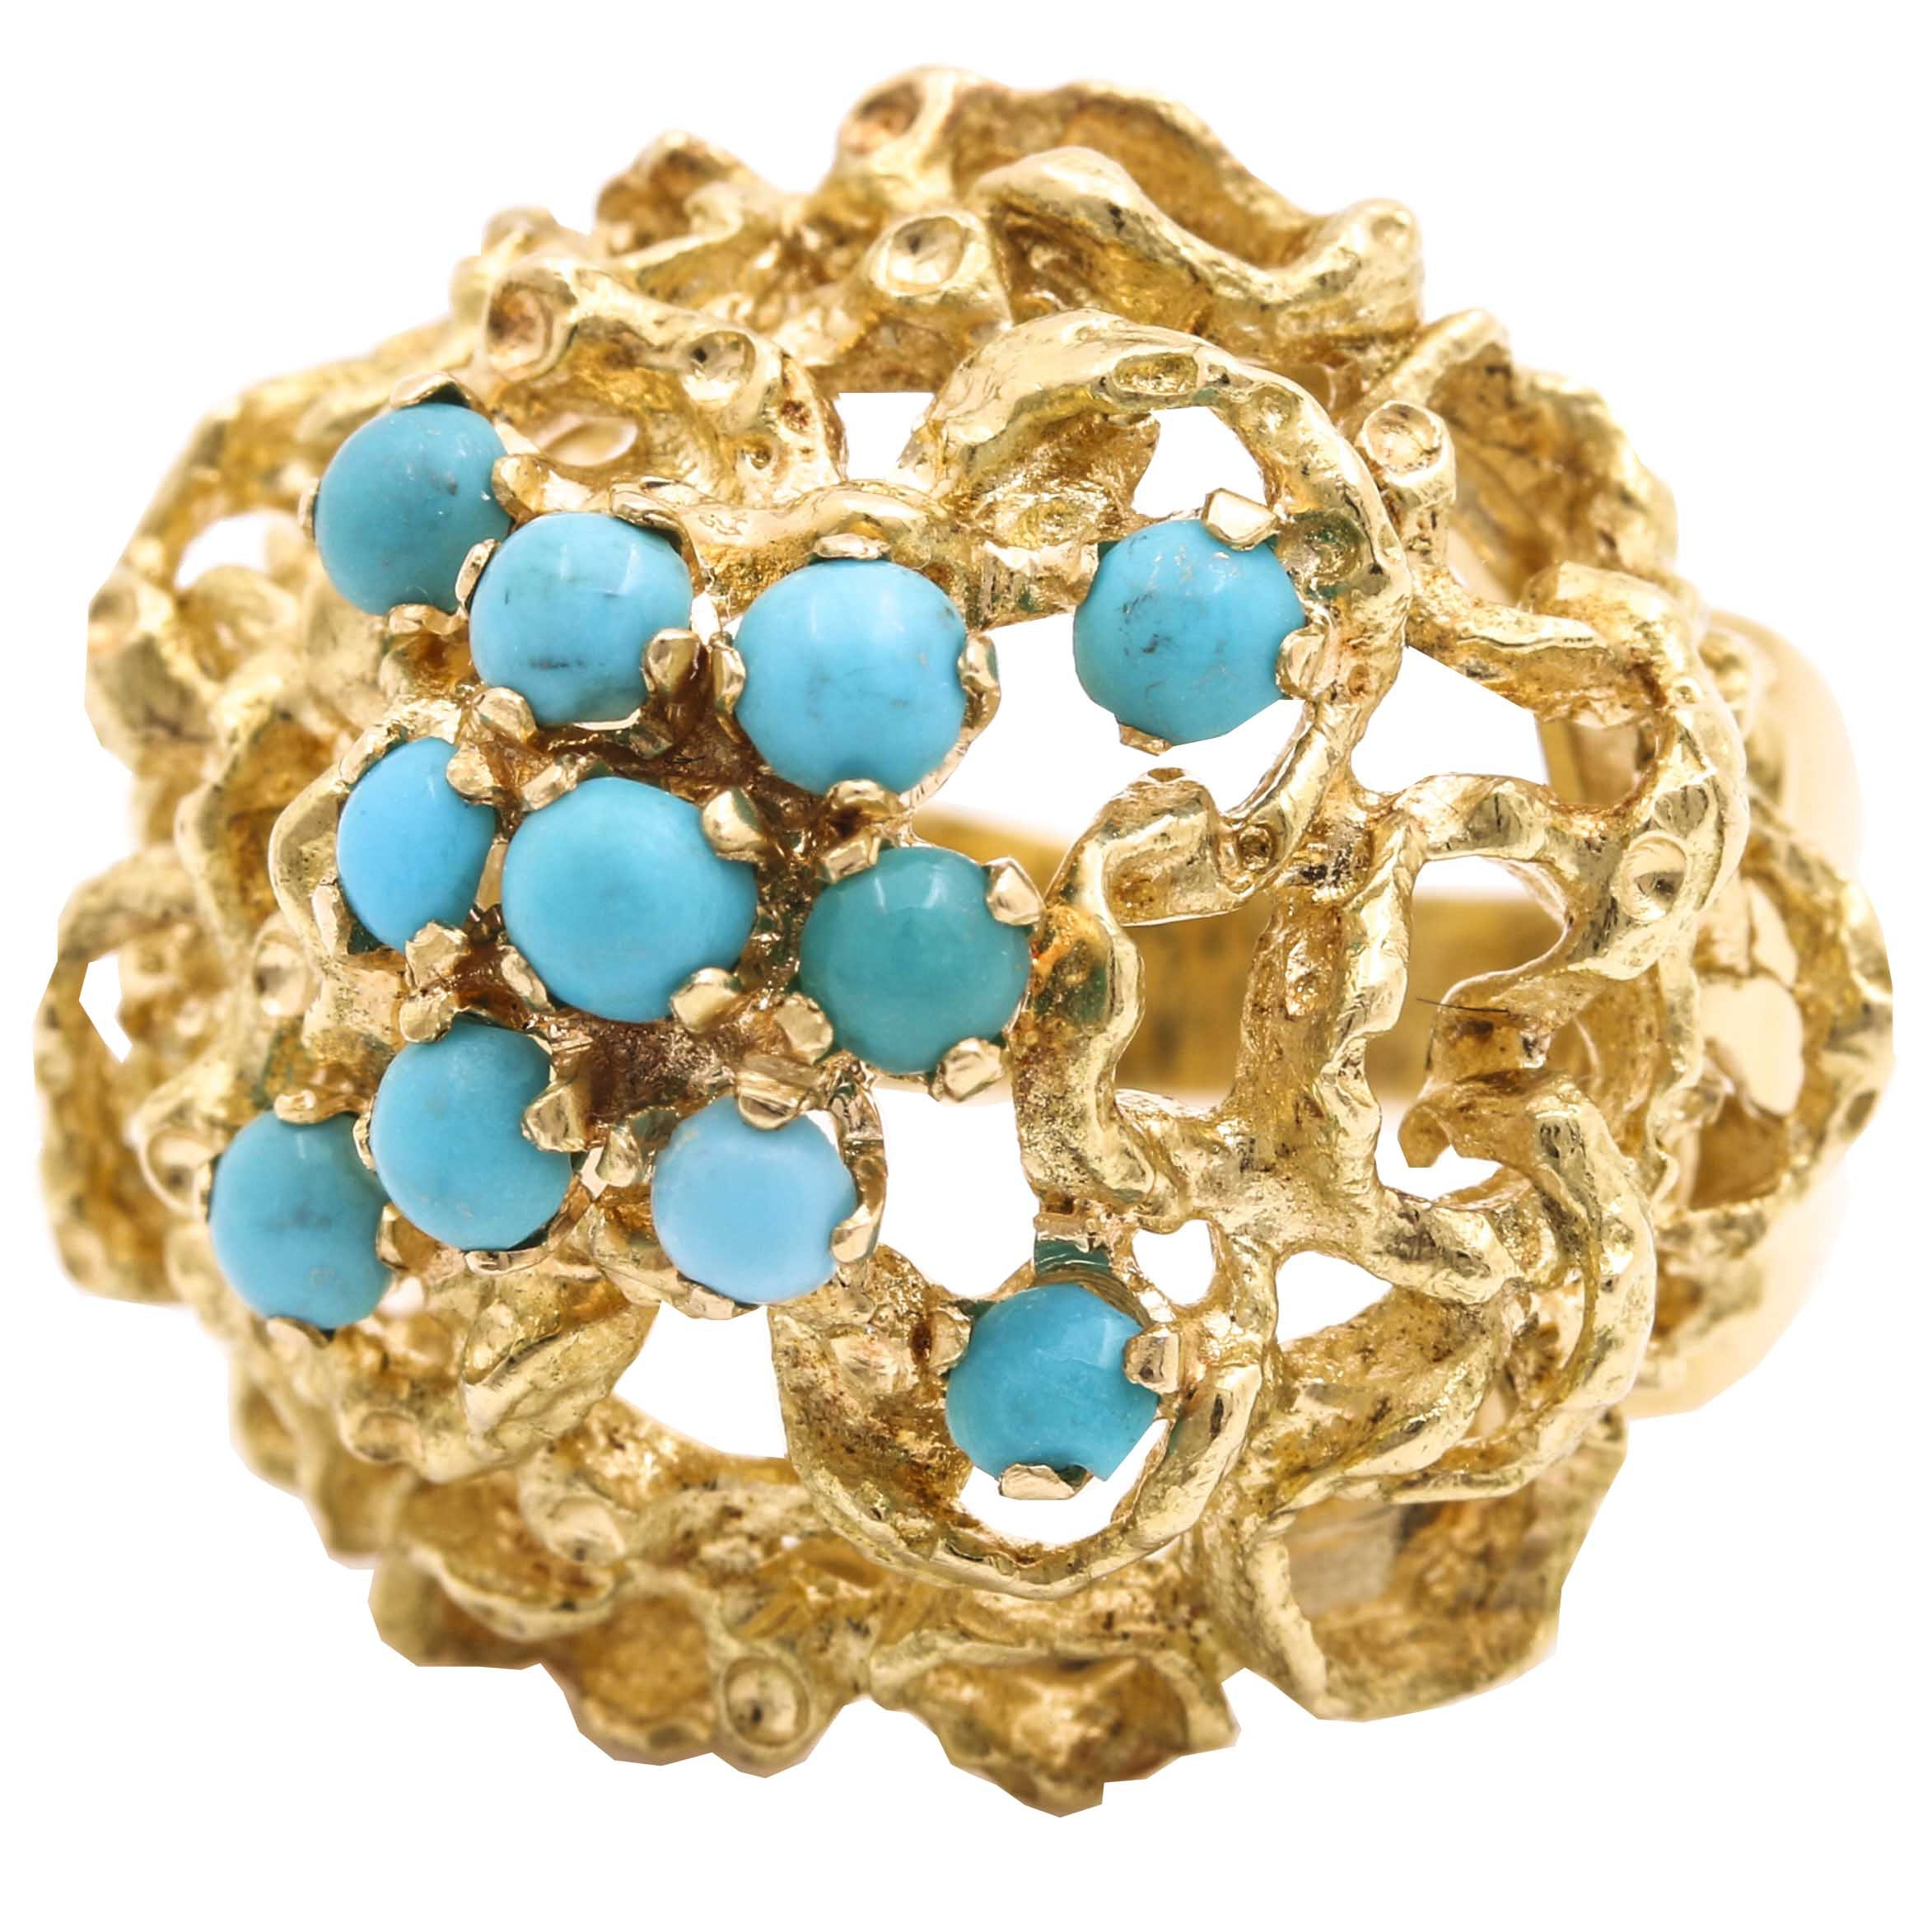 18K Yellow Gold Turquoise Dome Ring